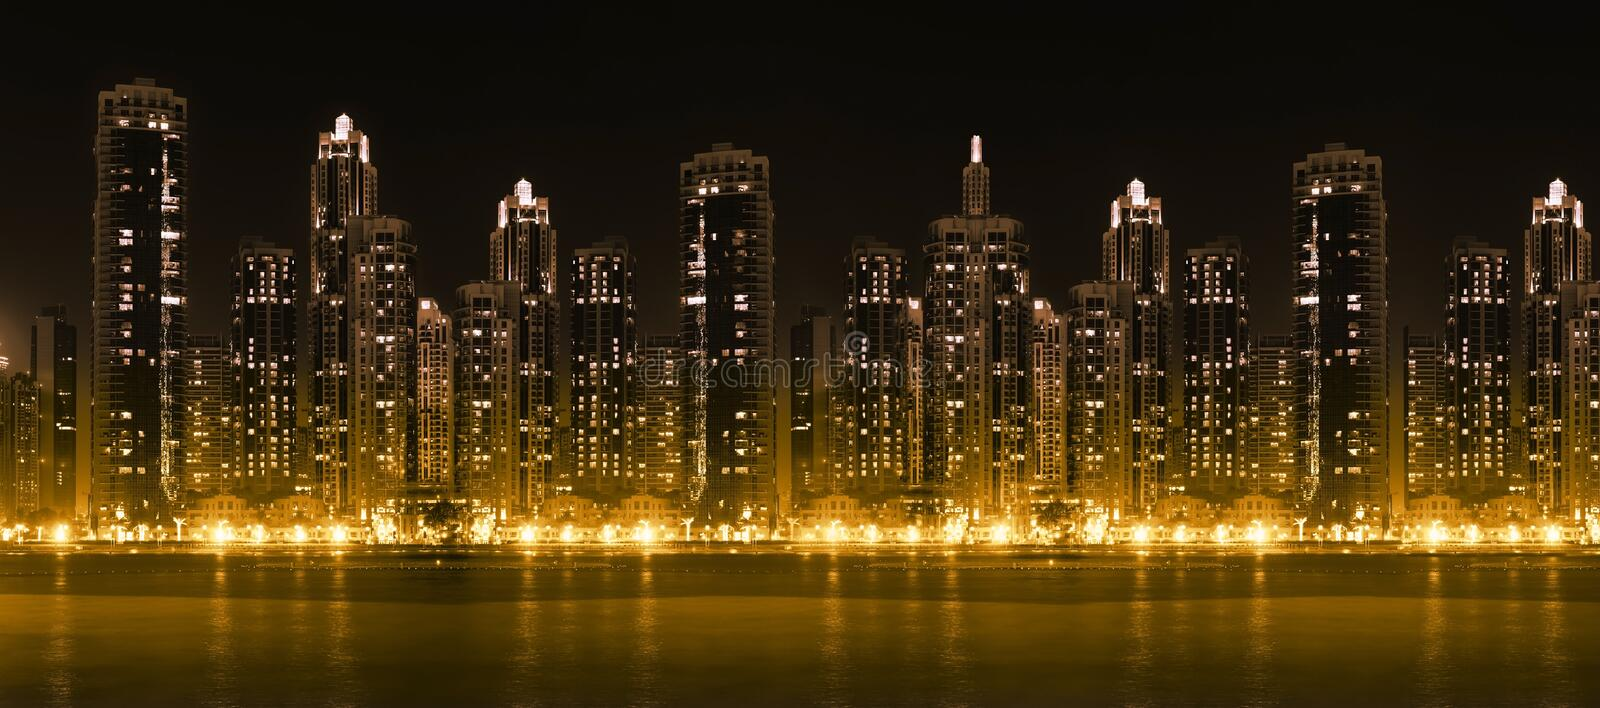 Modern city skyline at hight with illuminated skyscrapers. Modern city skyline at night with illuminated skyscrapers over water surface stock image